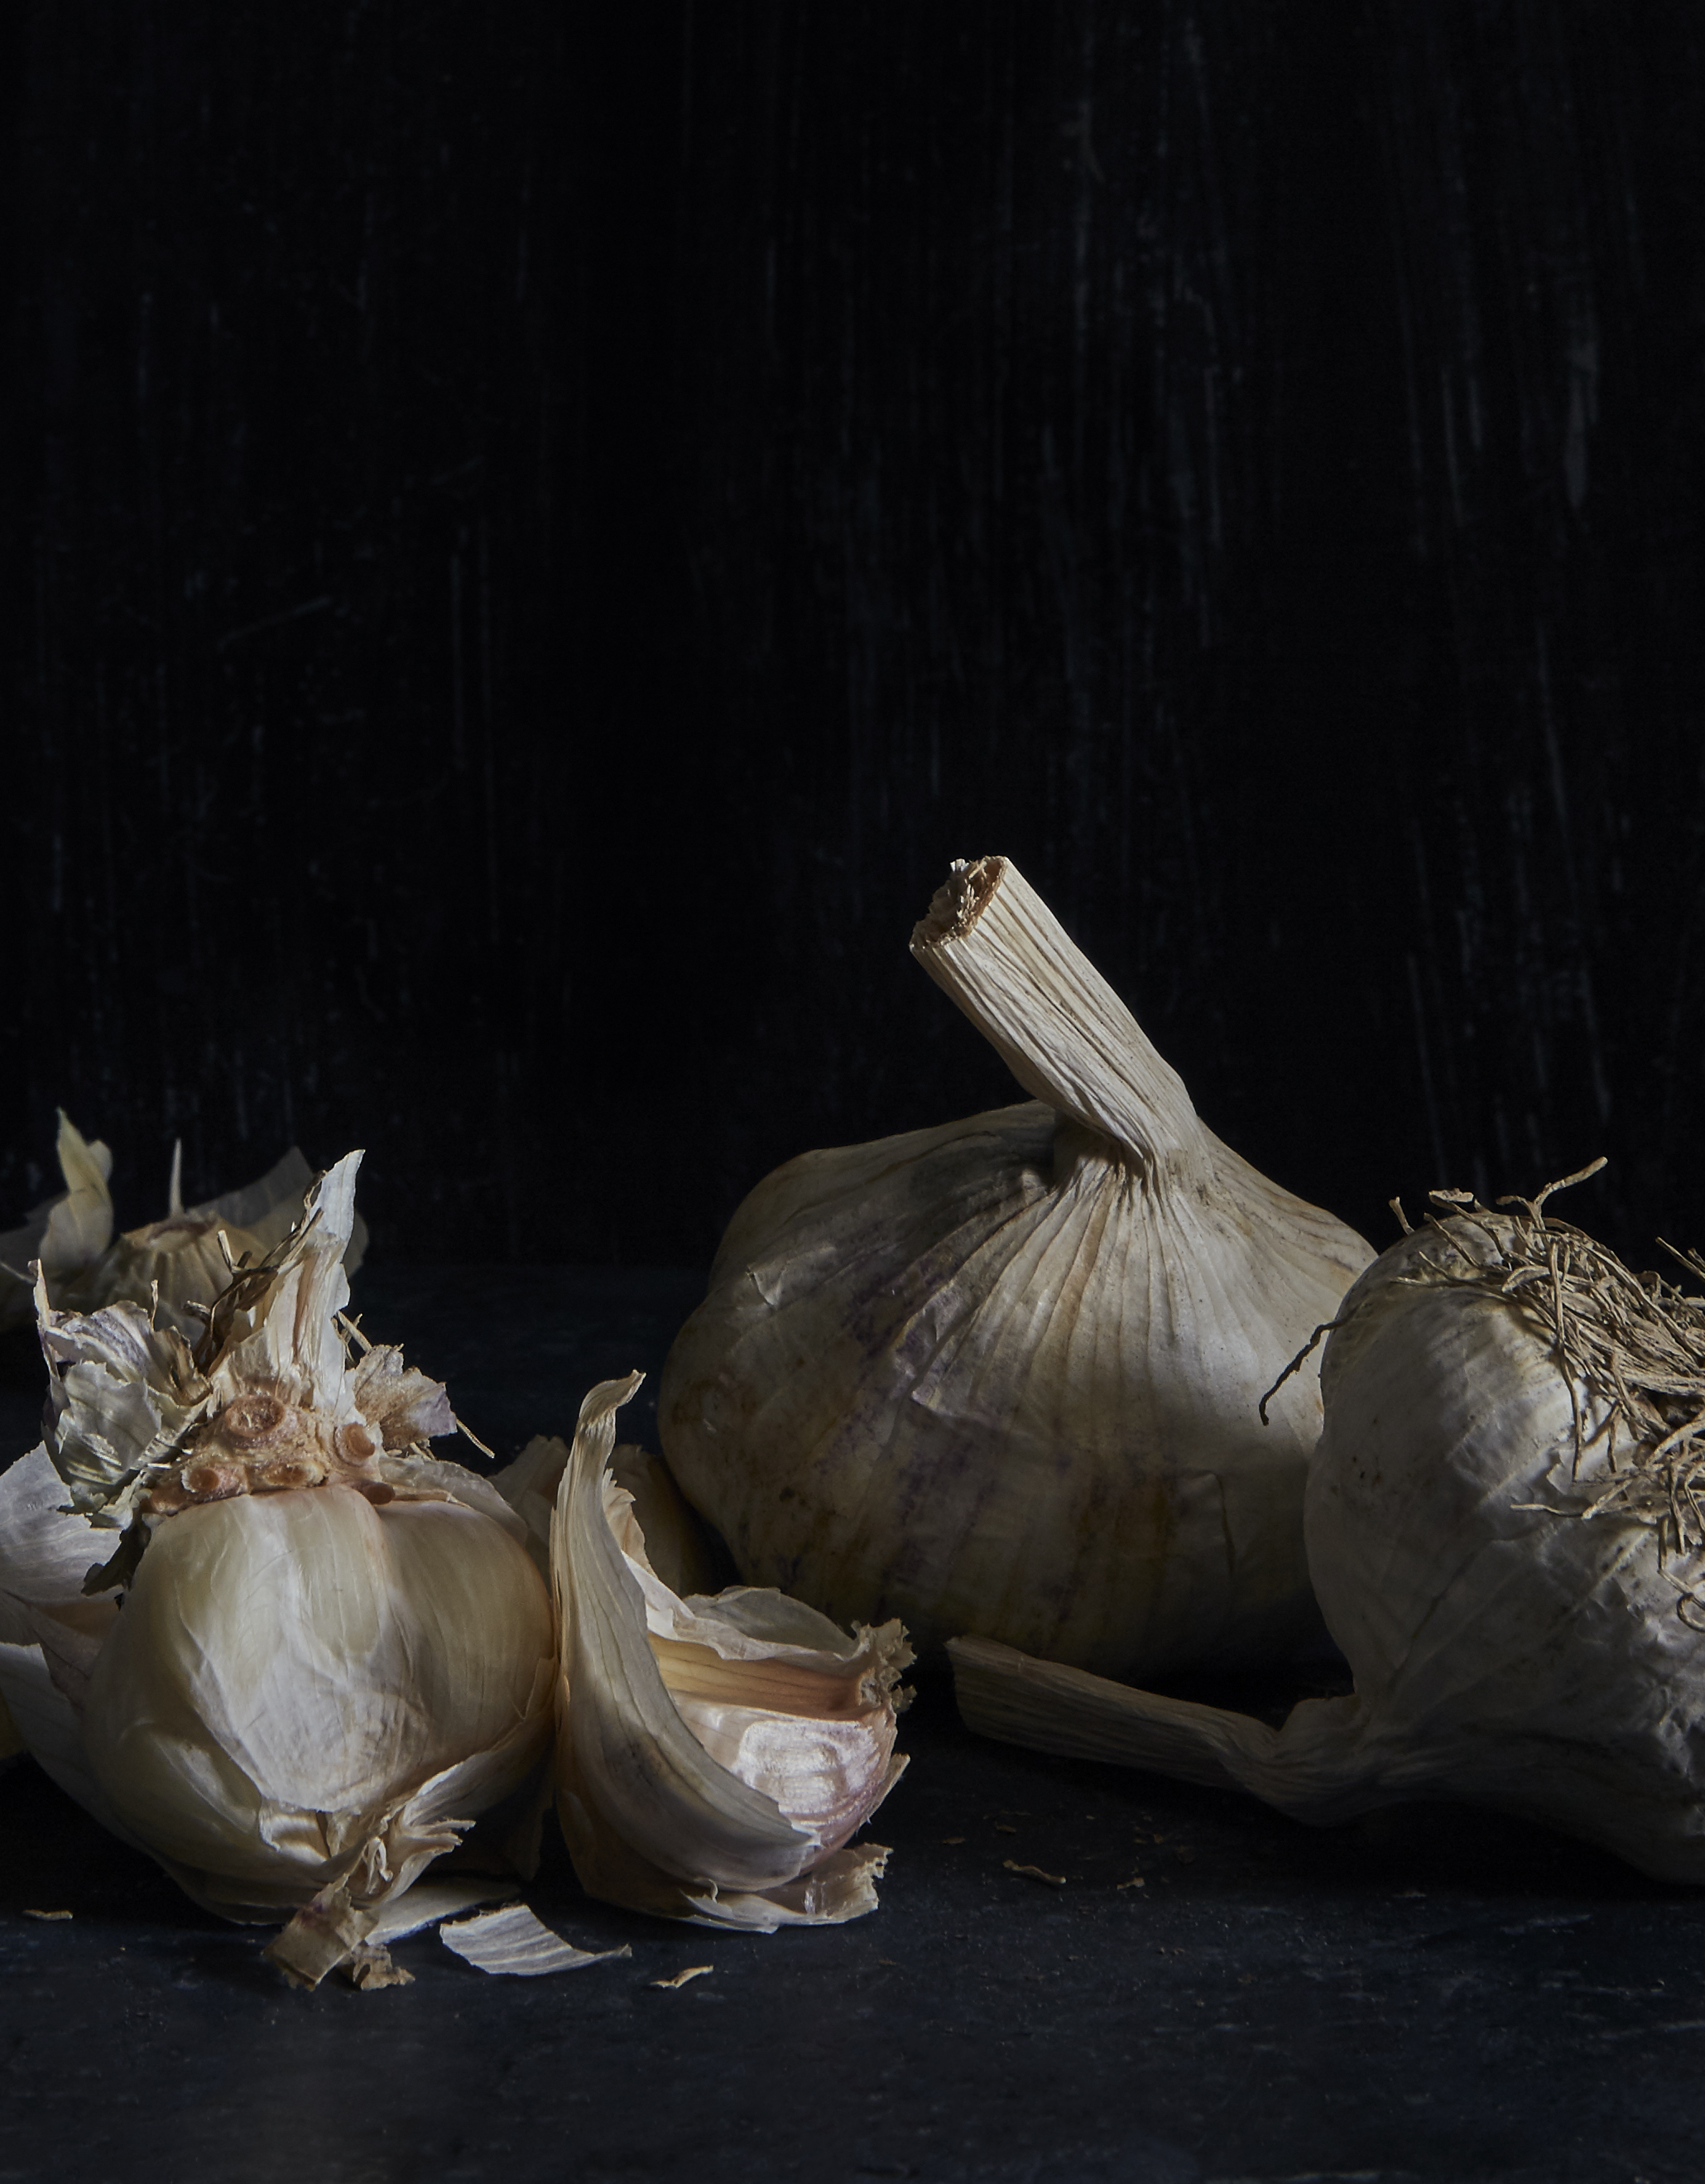 Hilary_McMullen_Organic_Garlic_173353.v3